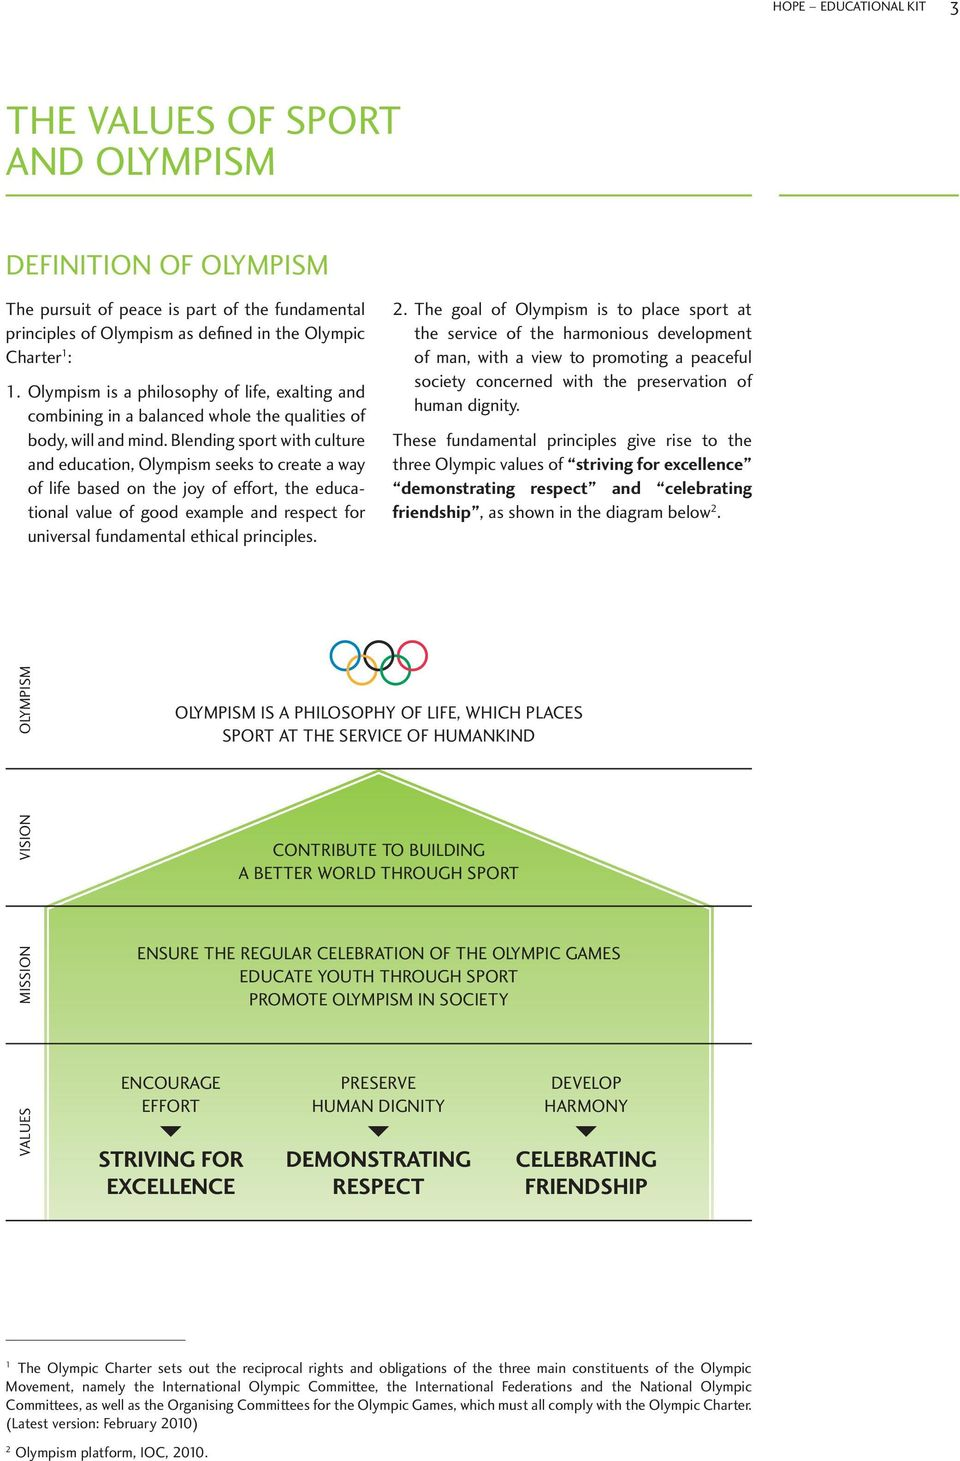 Blending sport with culture and education, Olympism seeks to create a way of life based on the joy of effort, the educational value of good example and respect for universal fundamental ethical